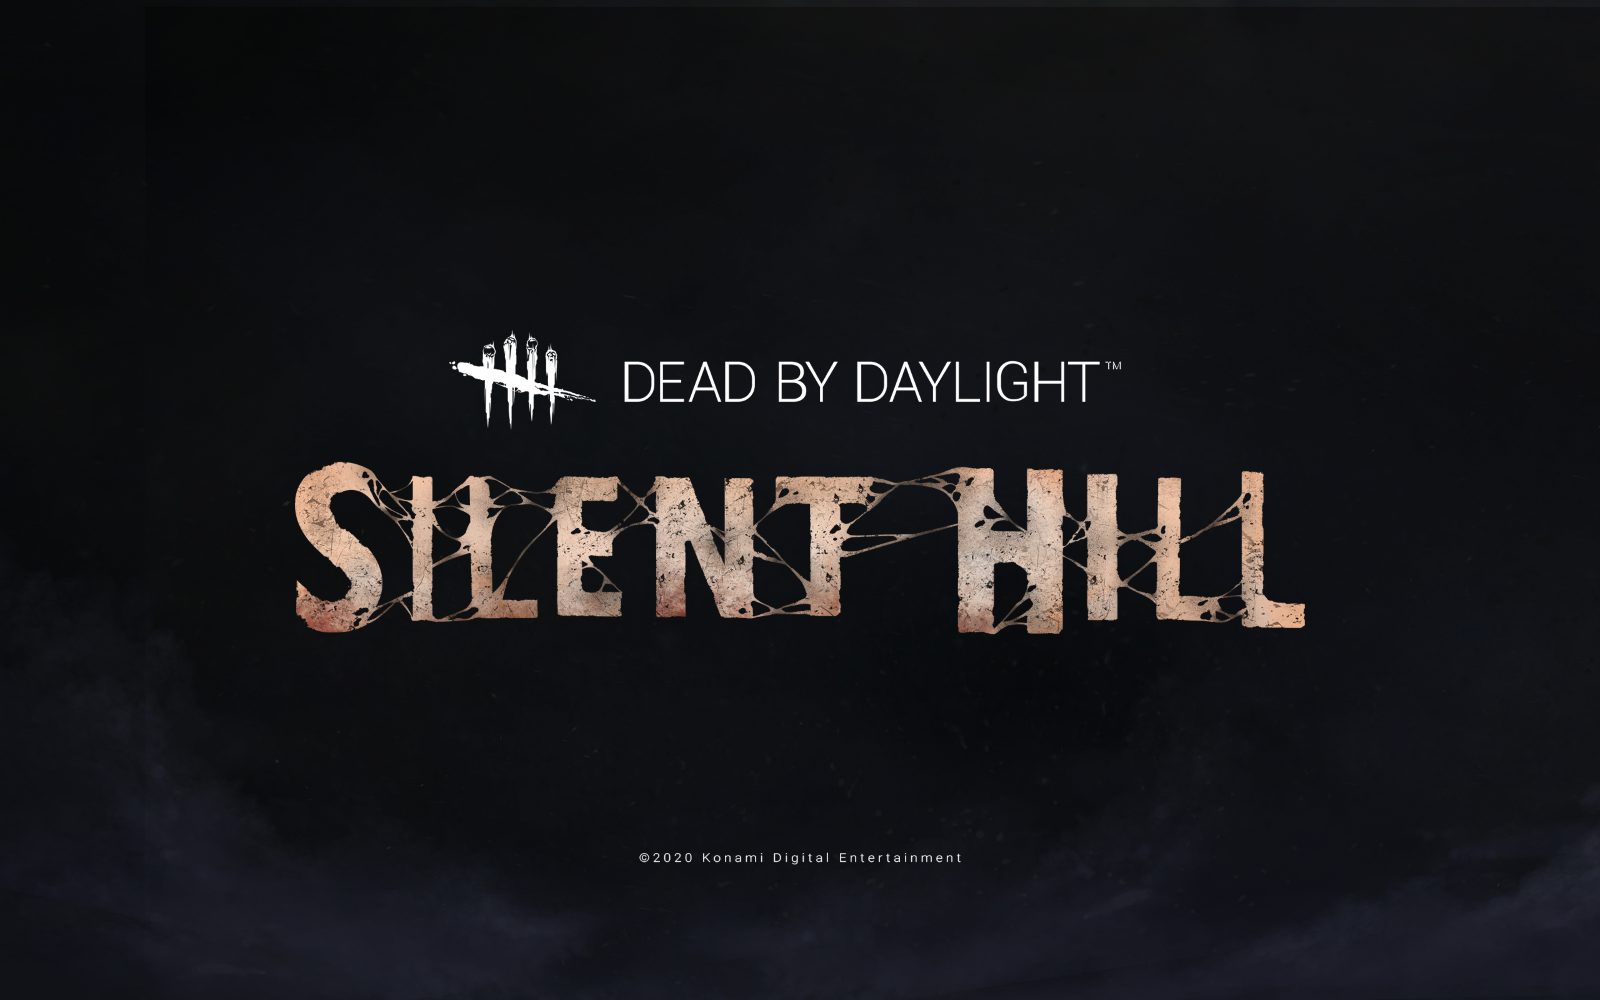 Silent Hill Coming To Dead By Daylight